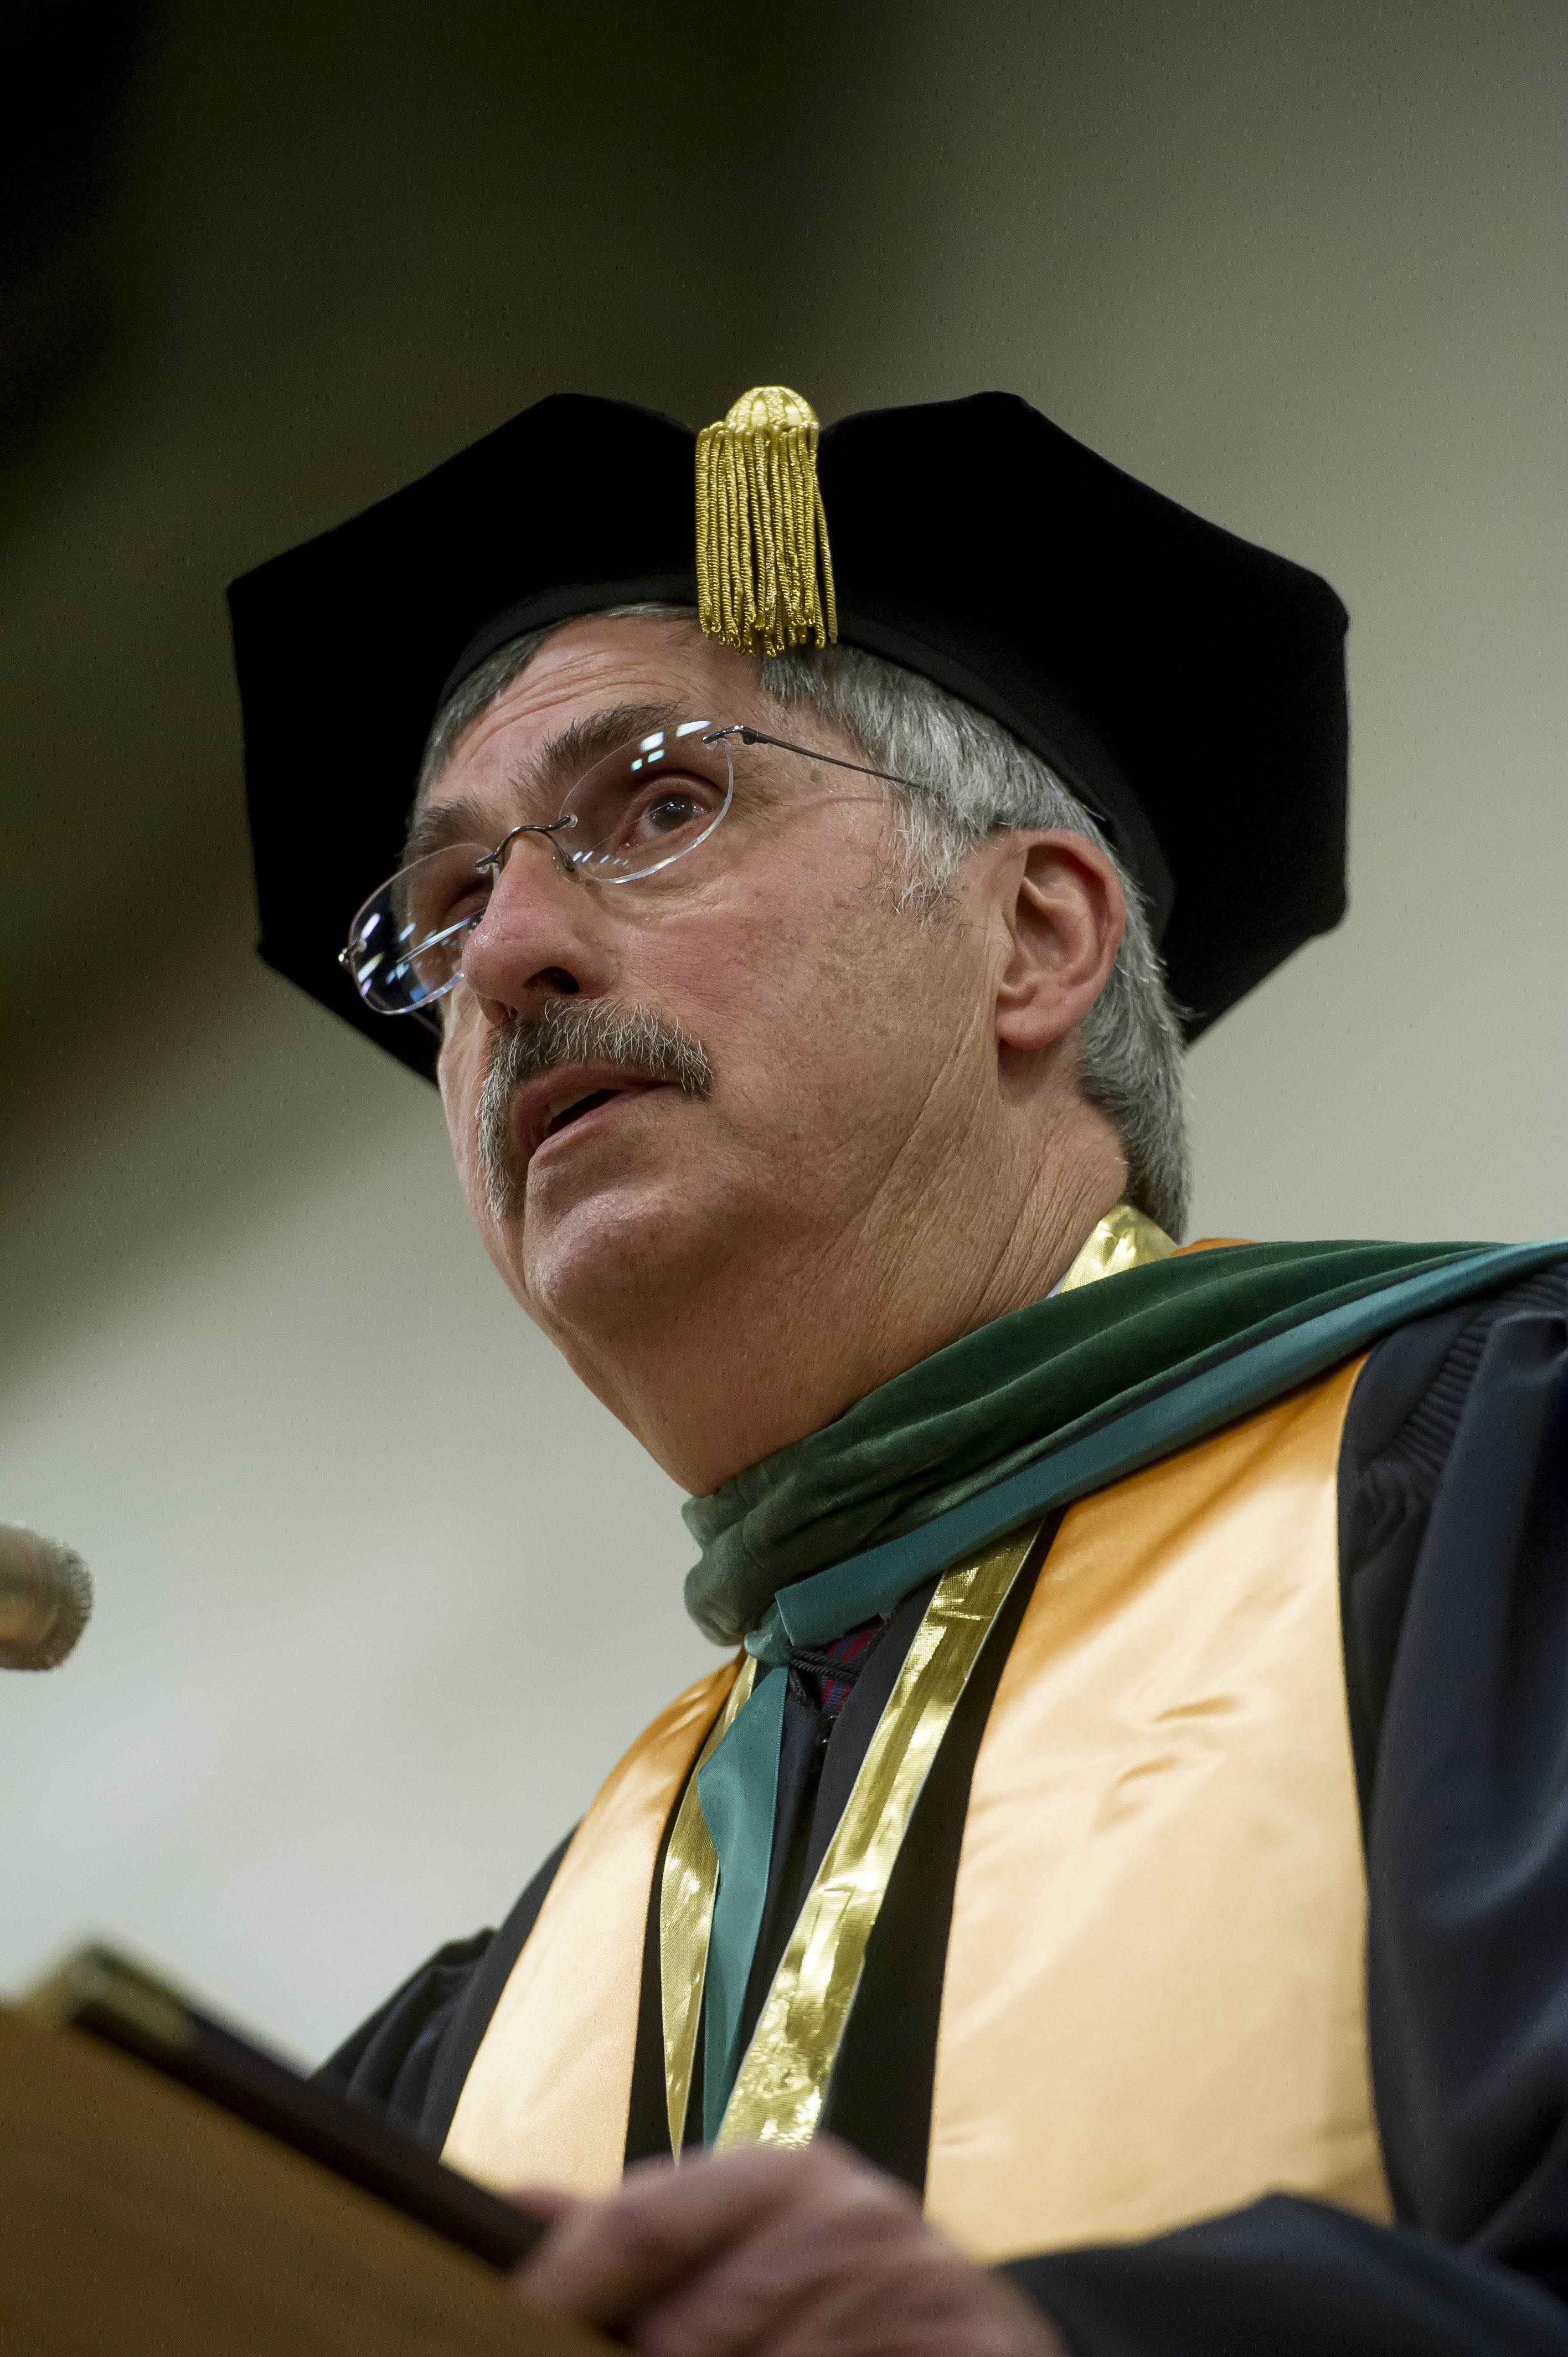 President Campion in robes